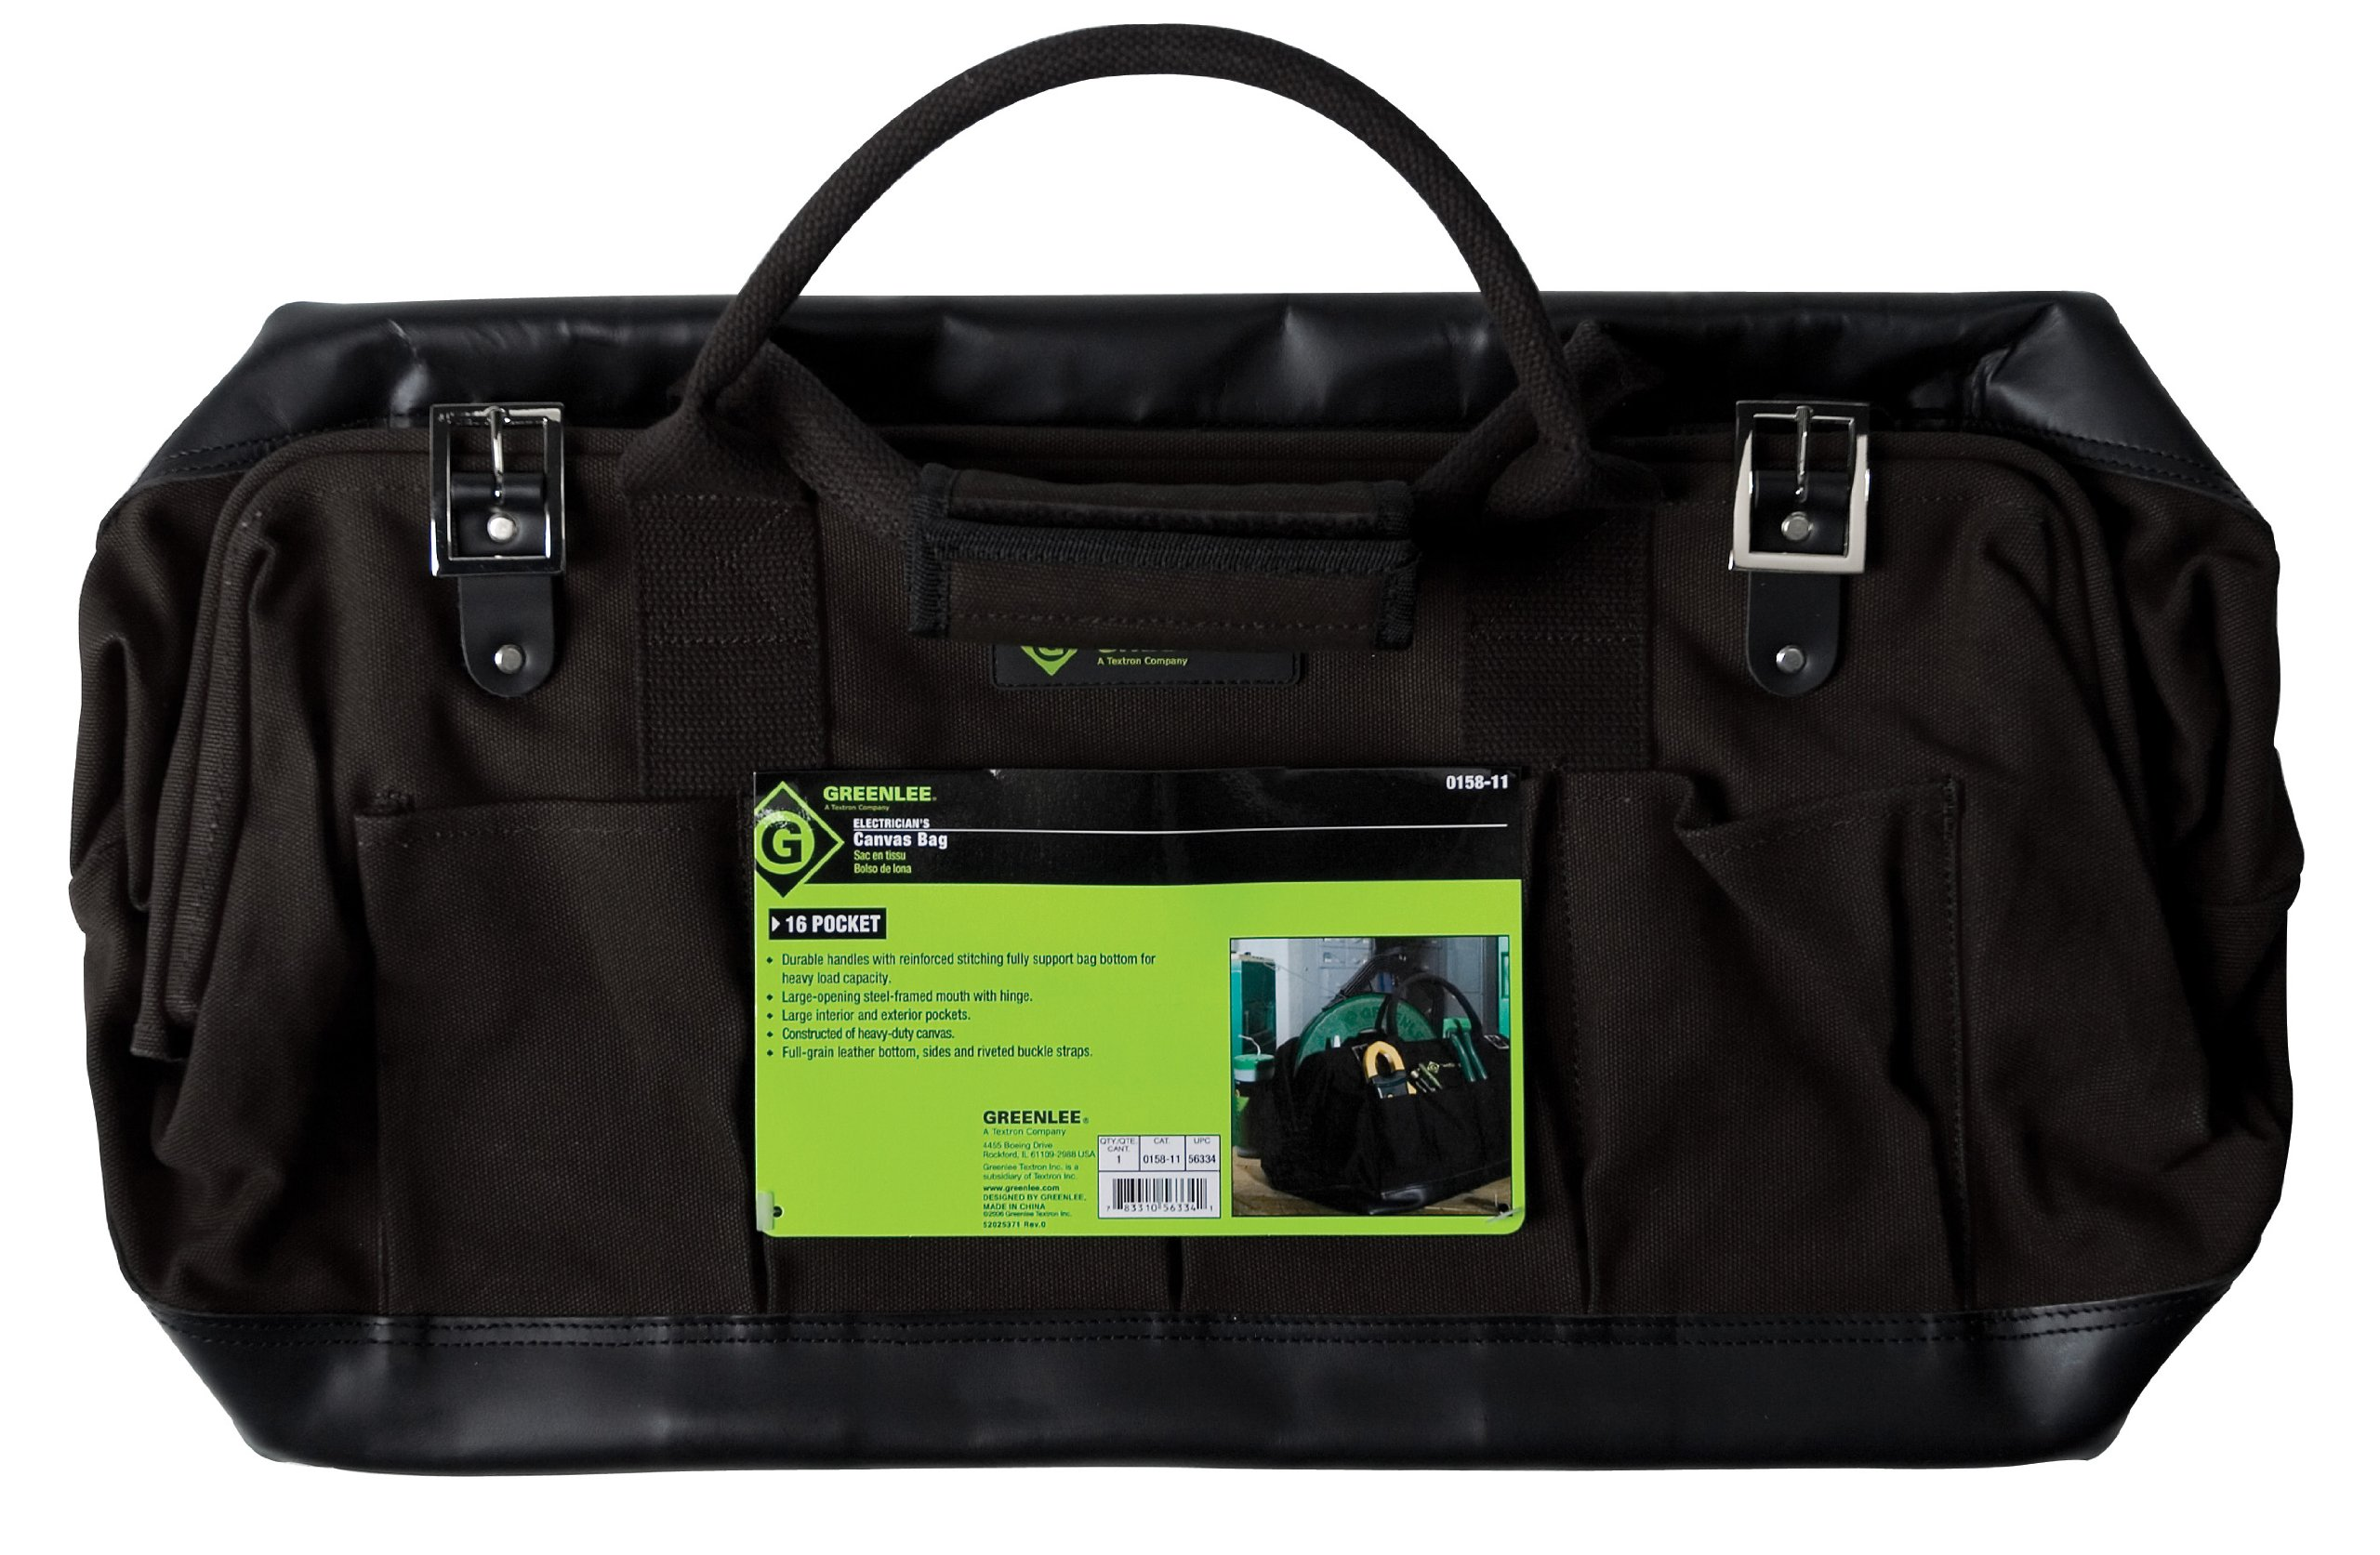 Greenlee 0158-11 Electrician's Canvas Bag, 20''